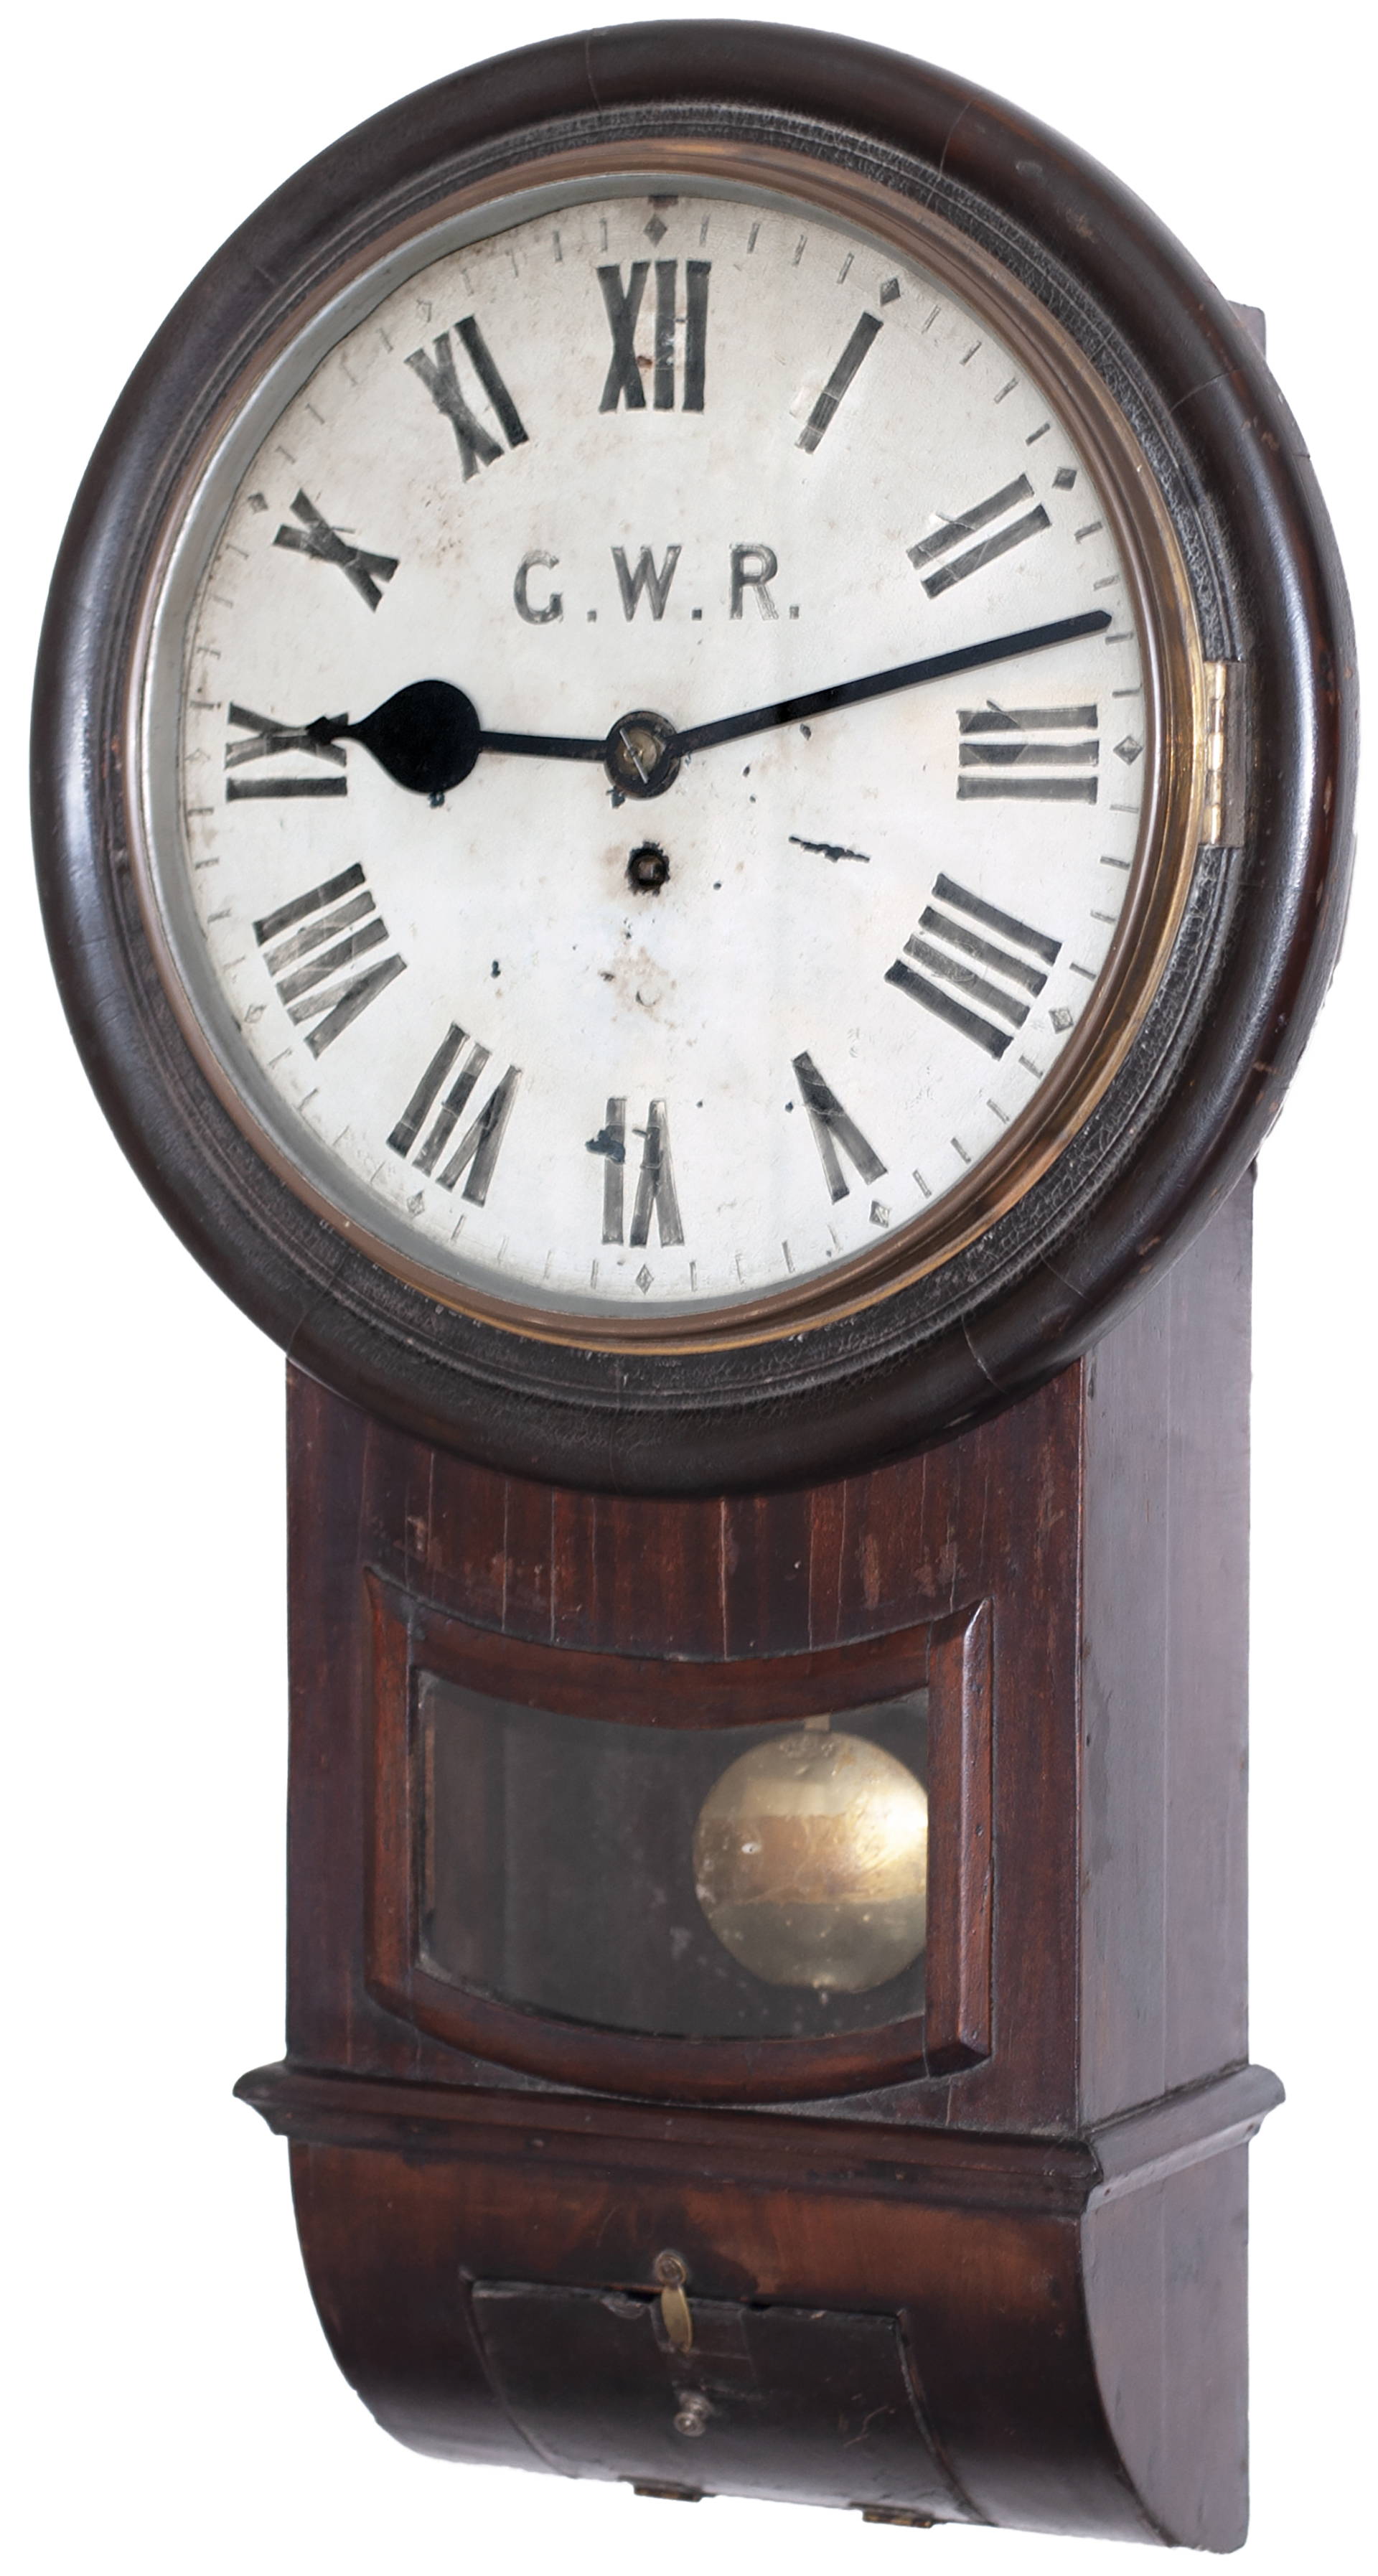 Great Western Railway 12 inch mahogany cased drop dial trunk fusee railway clock with a chain driven